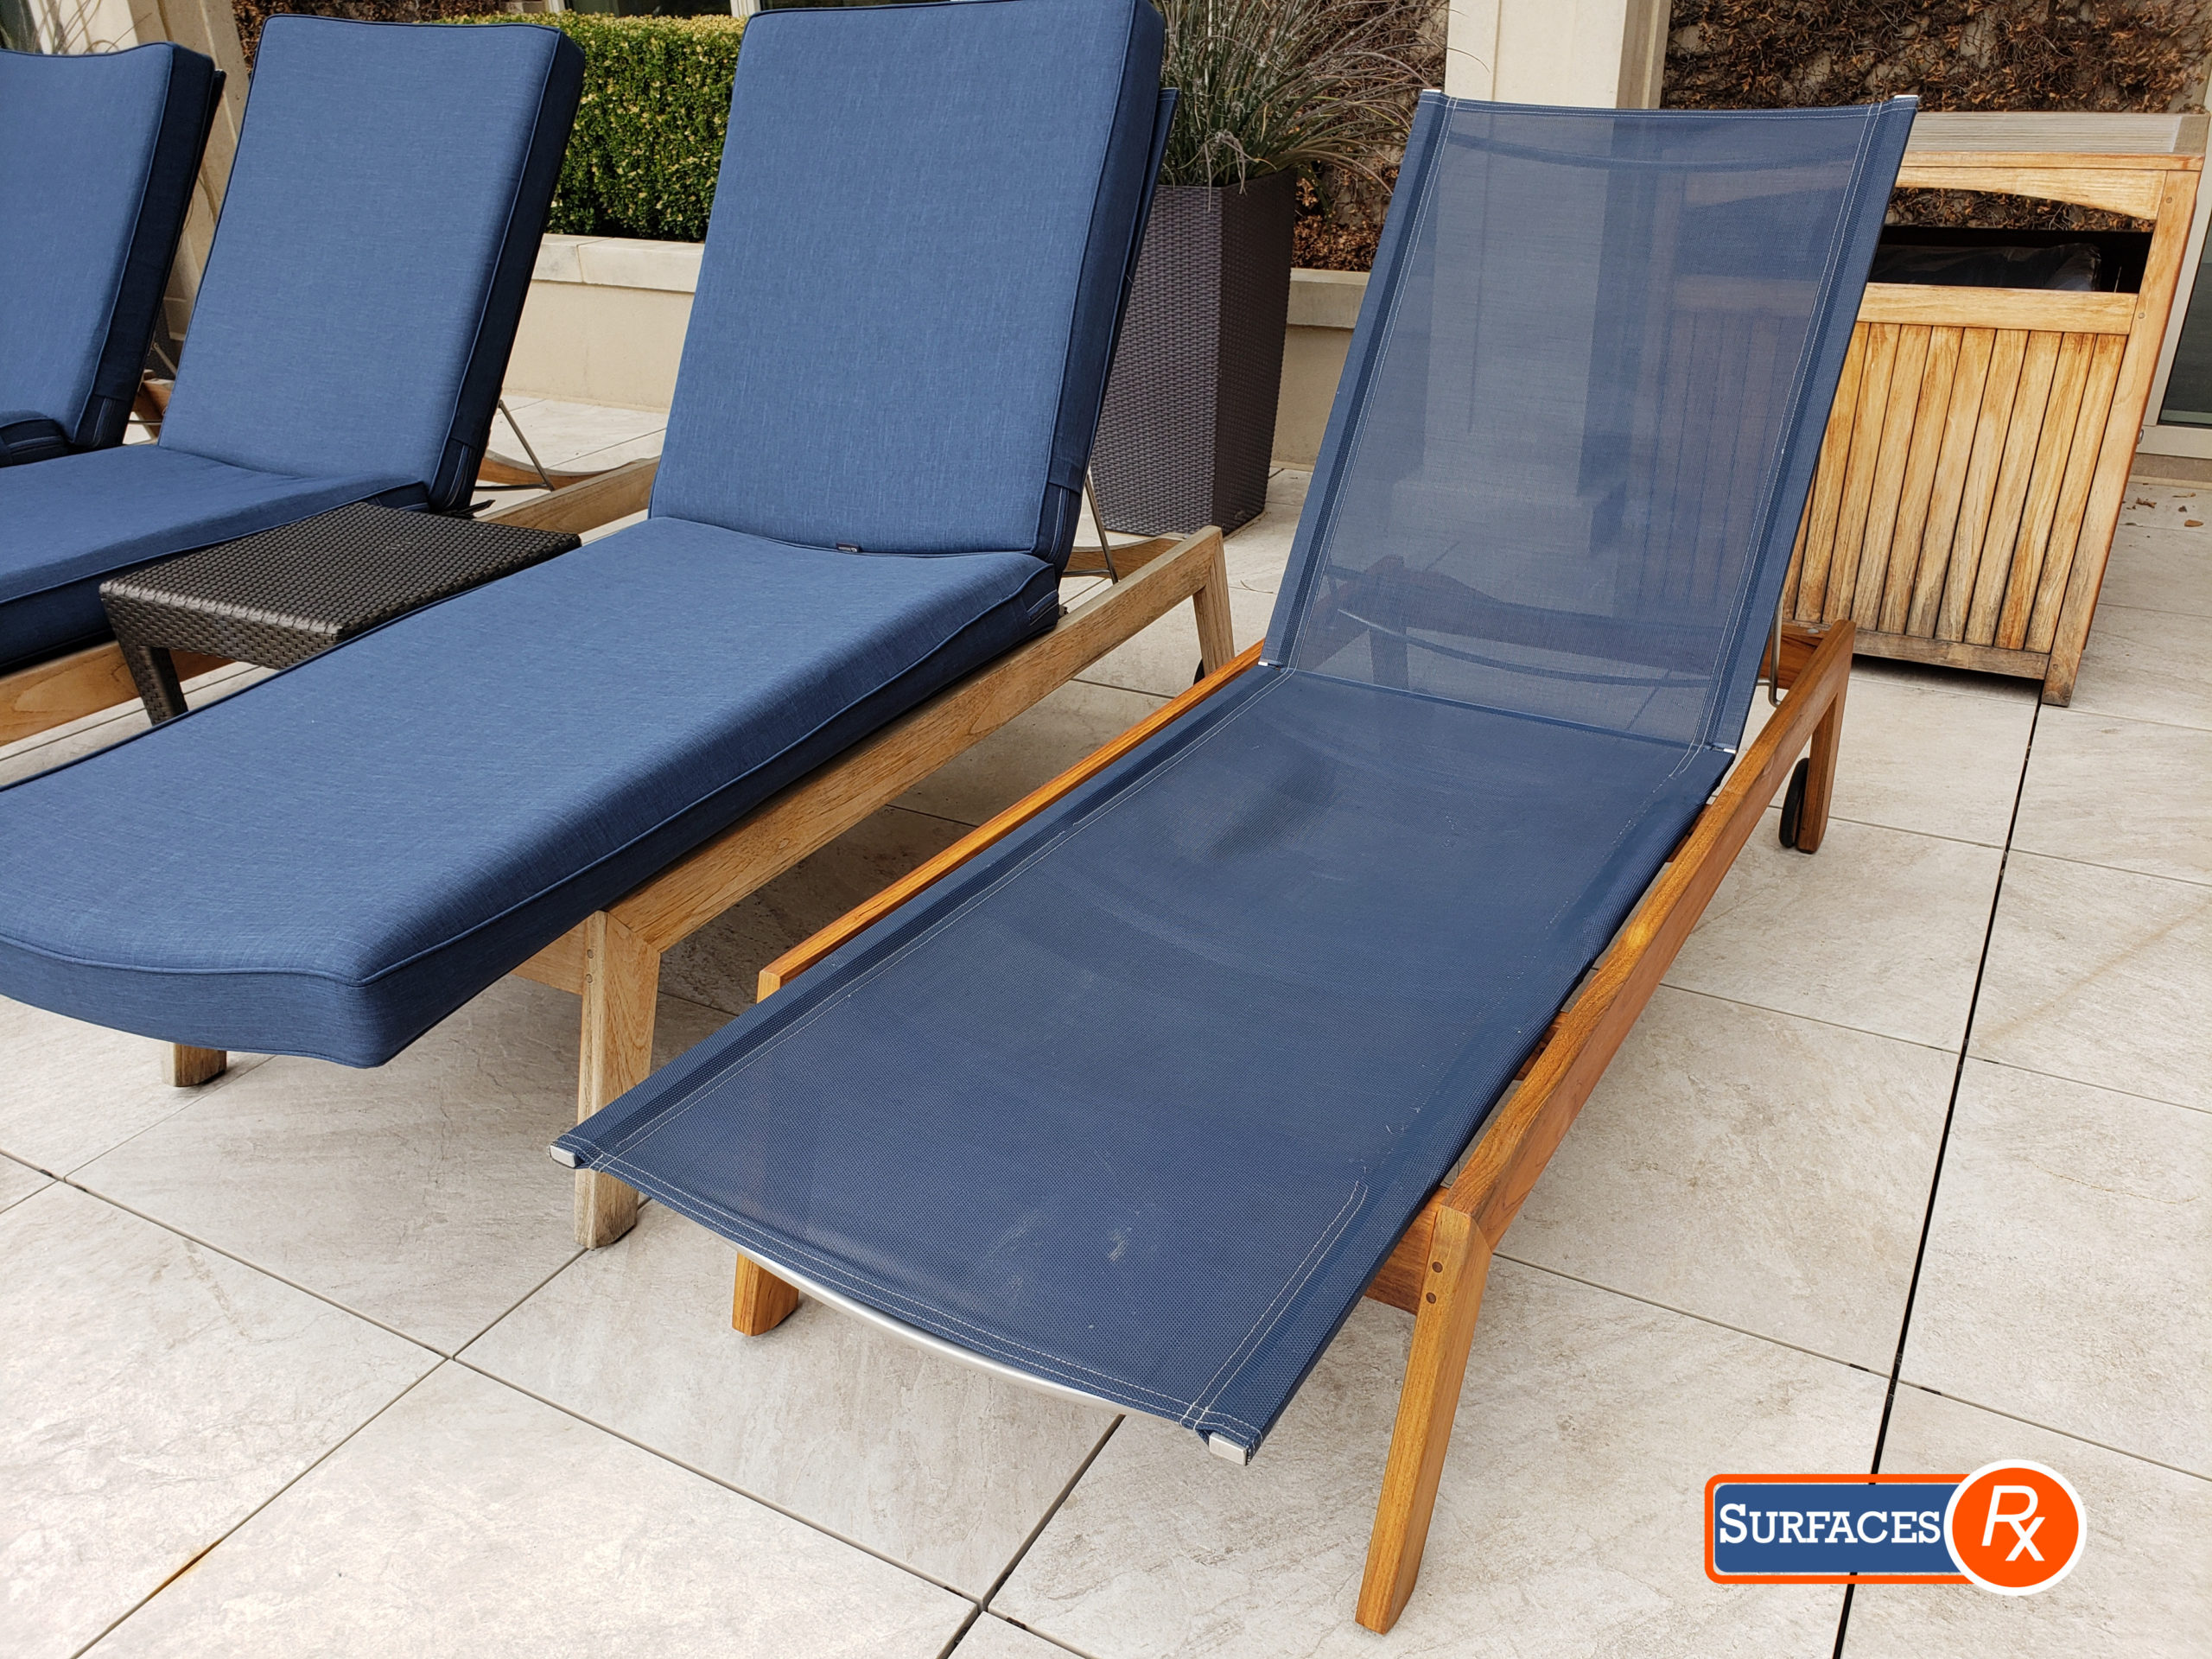 Before and After Teak Furniture Refinishing by Surfaces Rx Dallas Texas